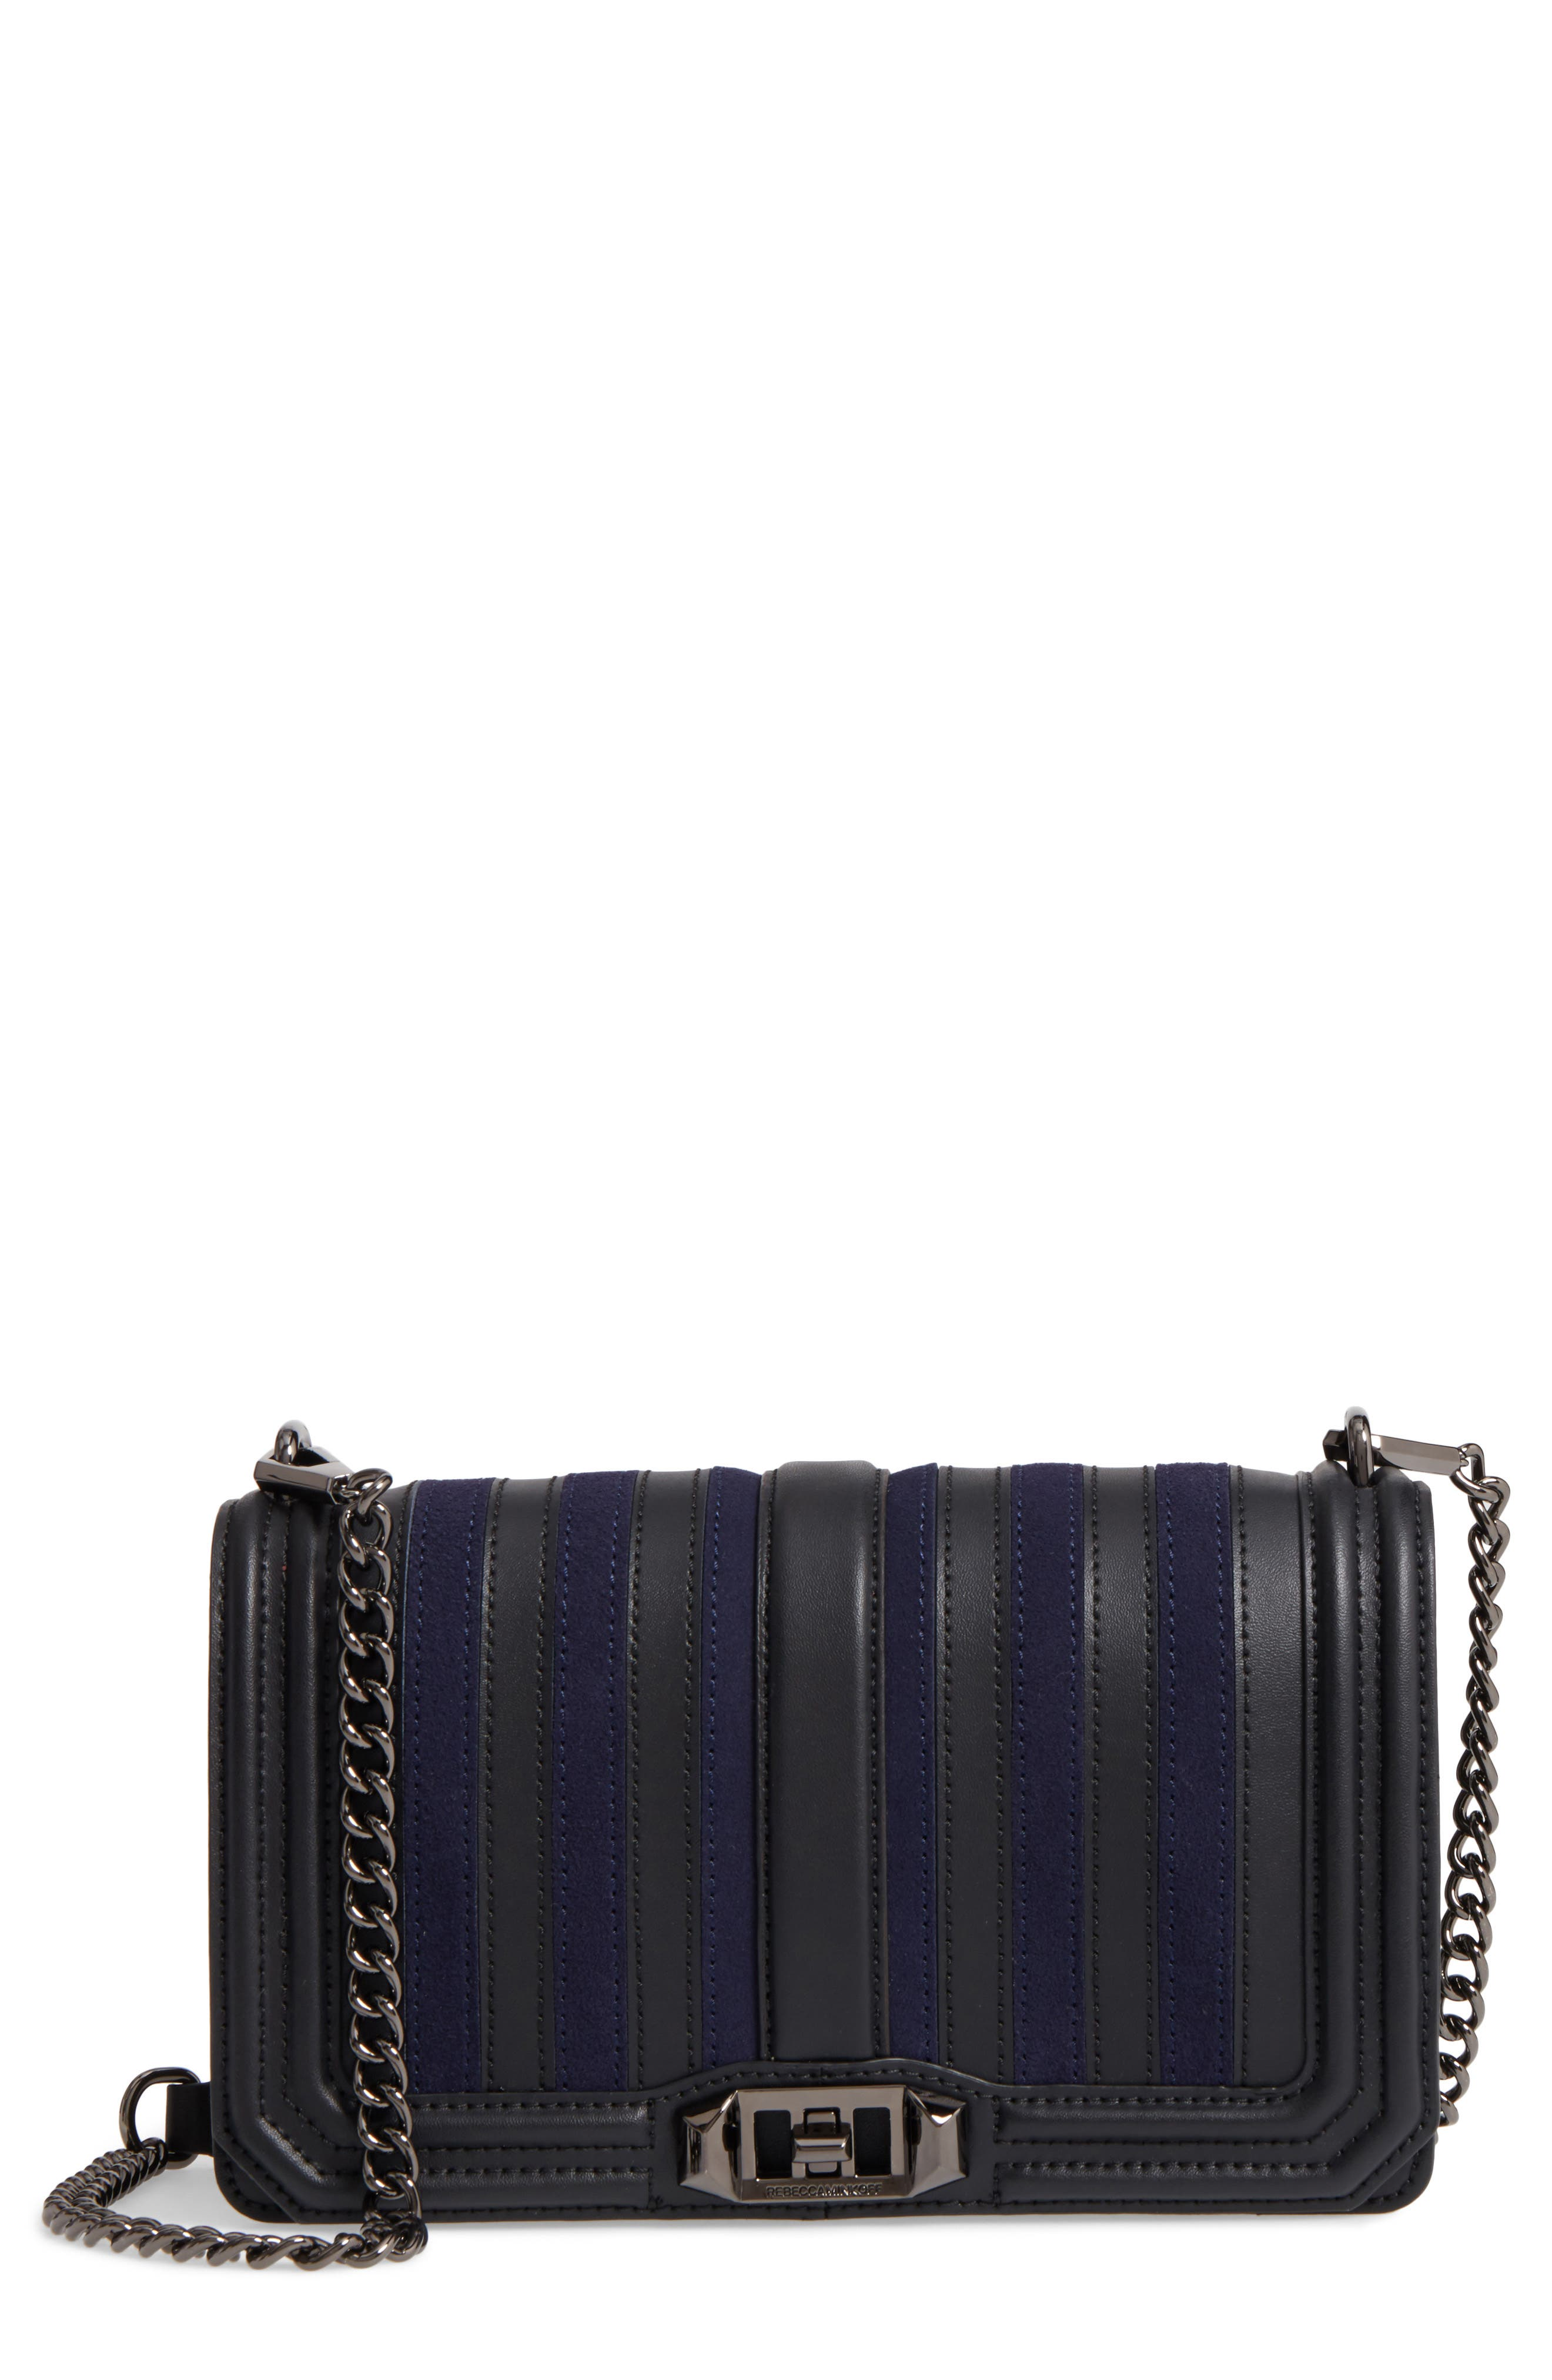 Alternate Image 1 Selected - Rebecca Minkoff Love Stripe Quilted Crossbody Bag